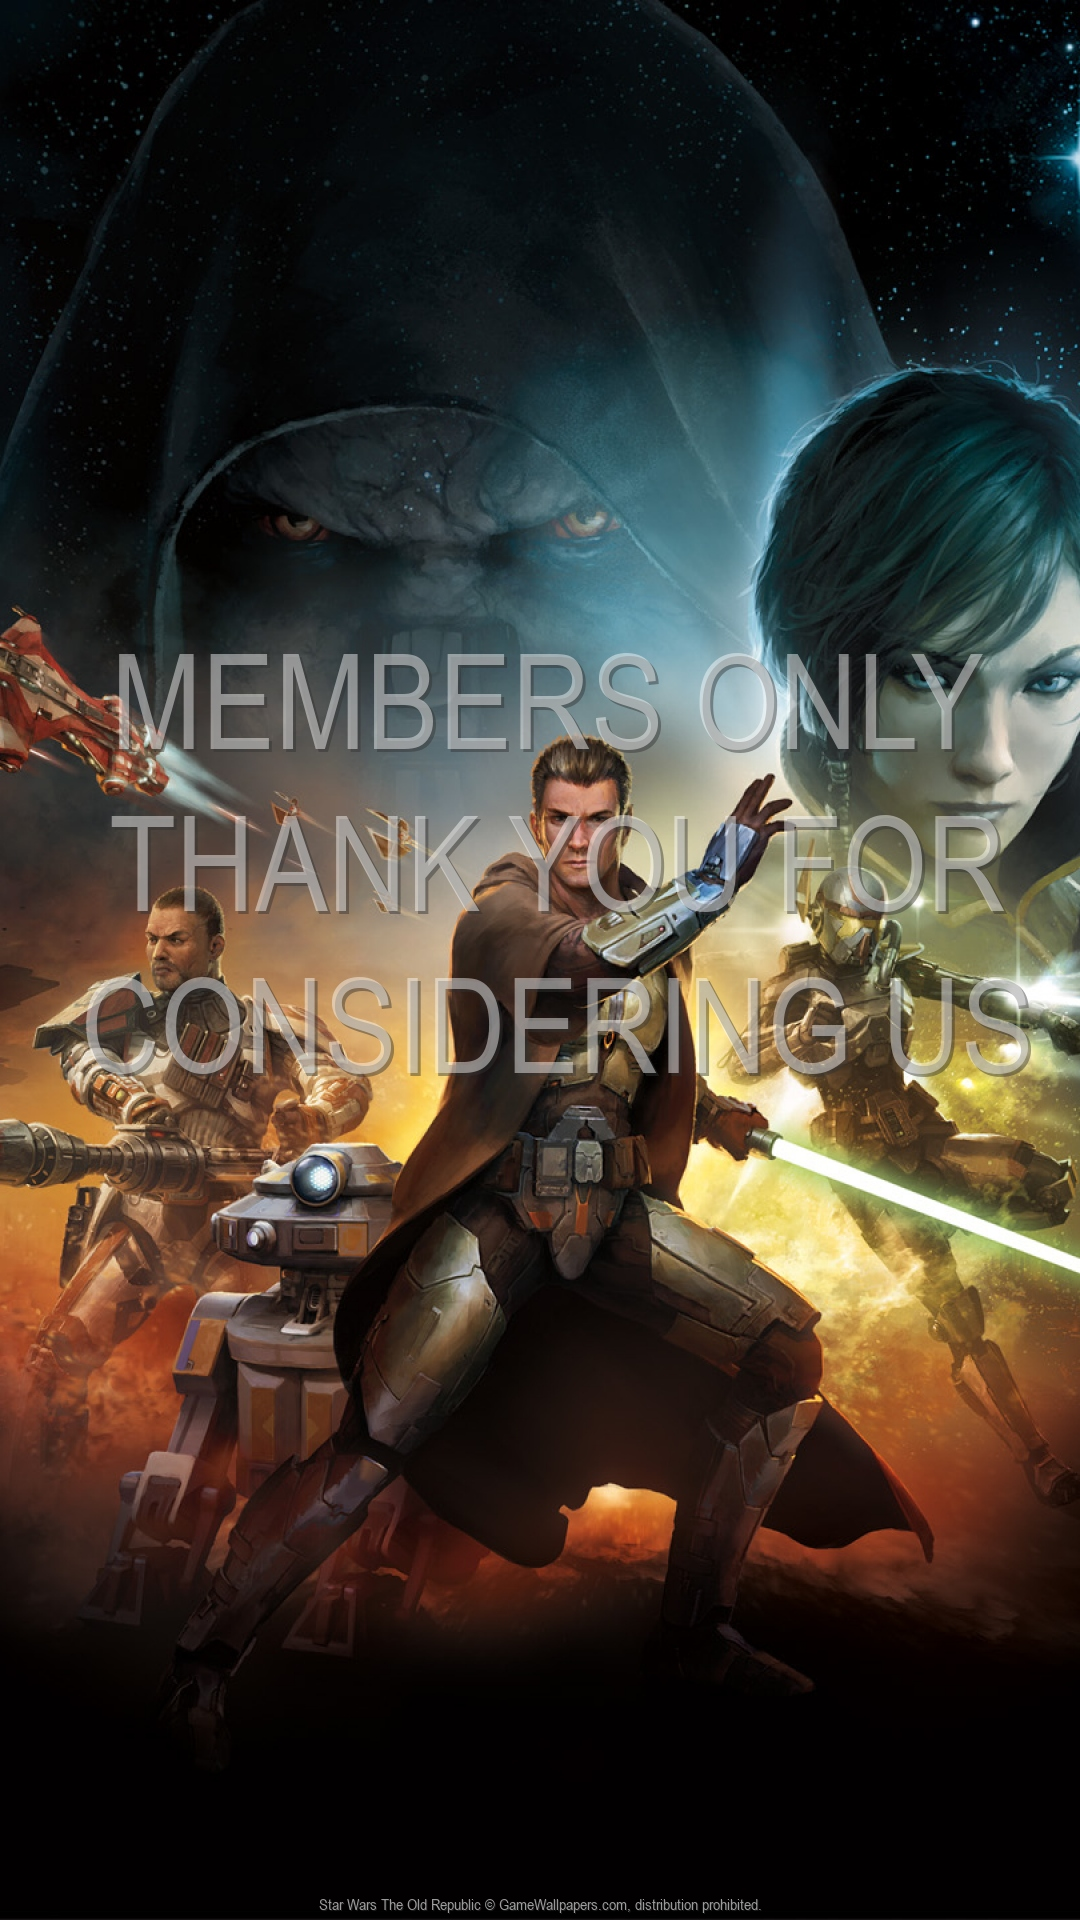 Star Wars: The Old Republic 1920x1080 Mobile wallpaper or background 04